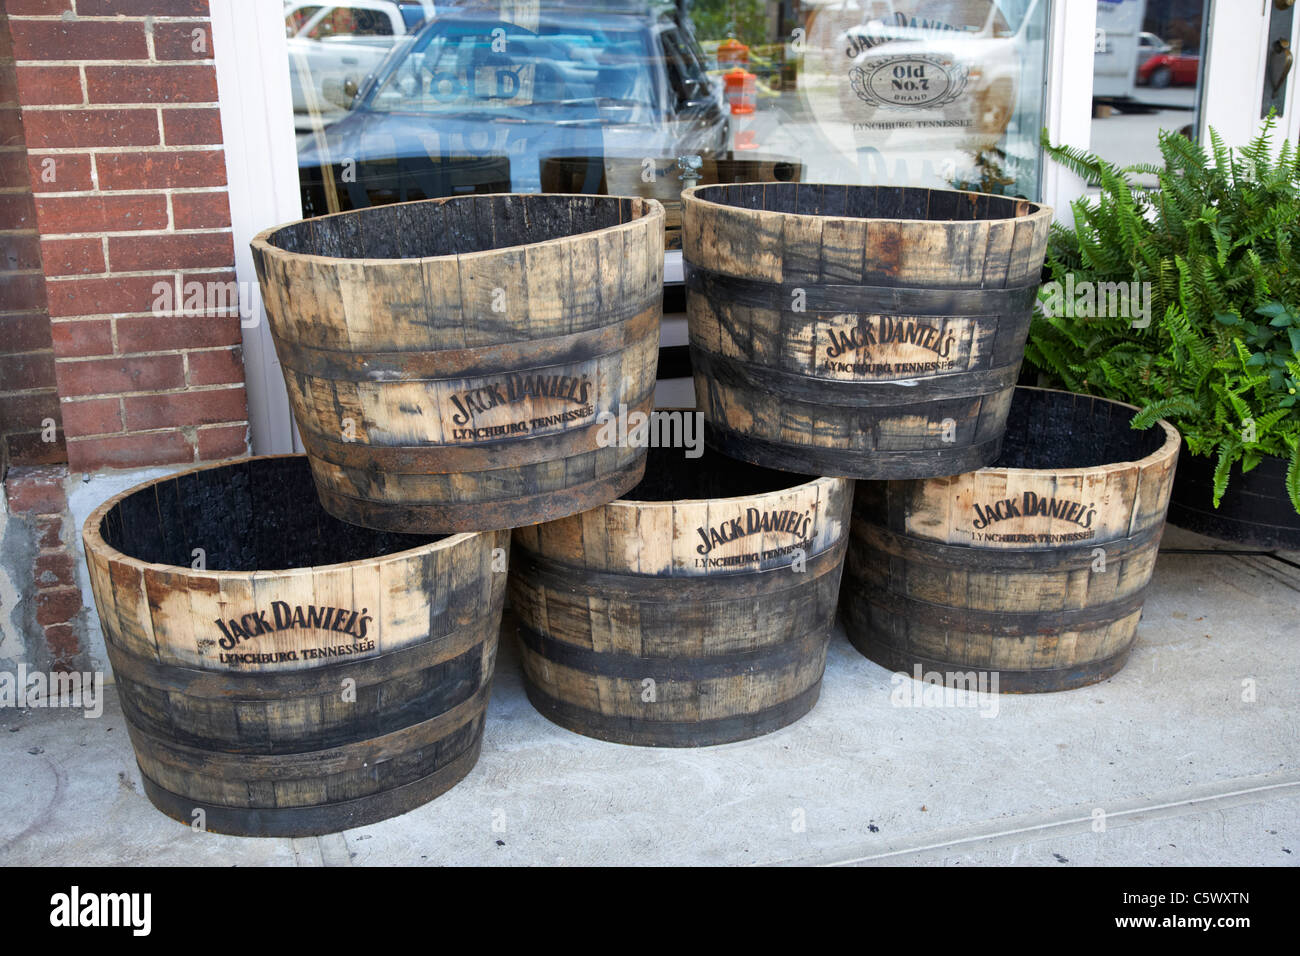 Half Jack Daniels Whiskey Barrels For Sale In At The Hardware Store